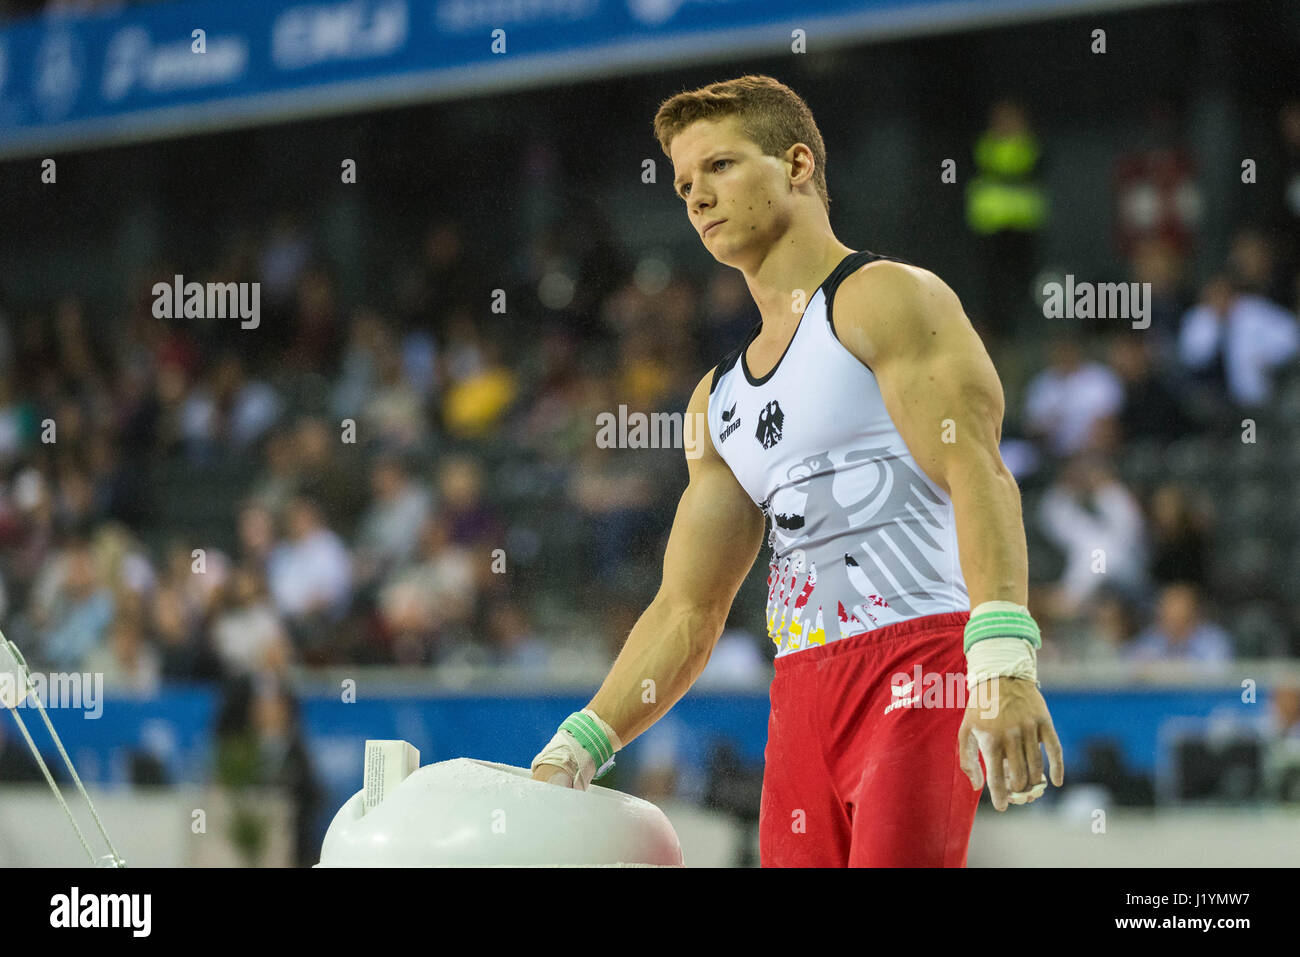 Cluj Napoca, Romania. 21st Apr, 2017. Philipp Herder from Germany performs at the rings at the UEG European Championships - Stock Image